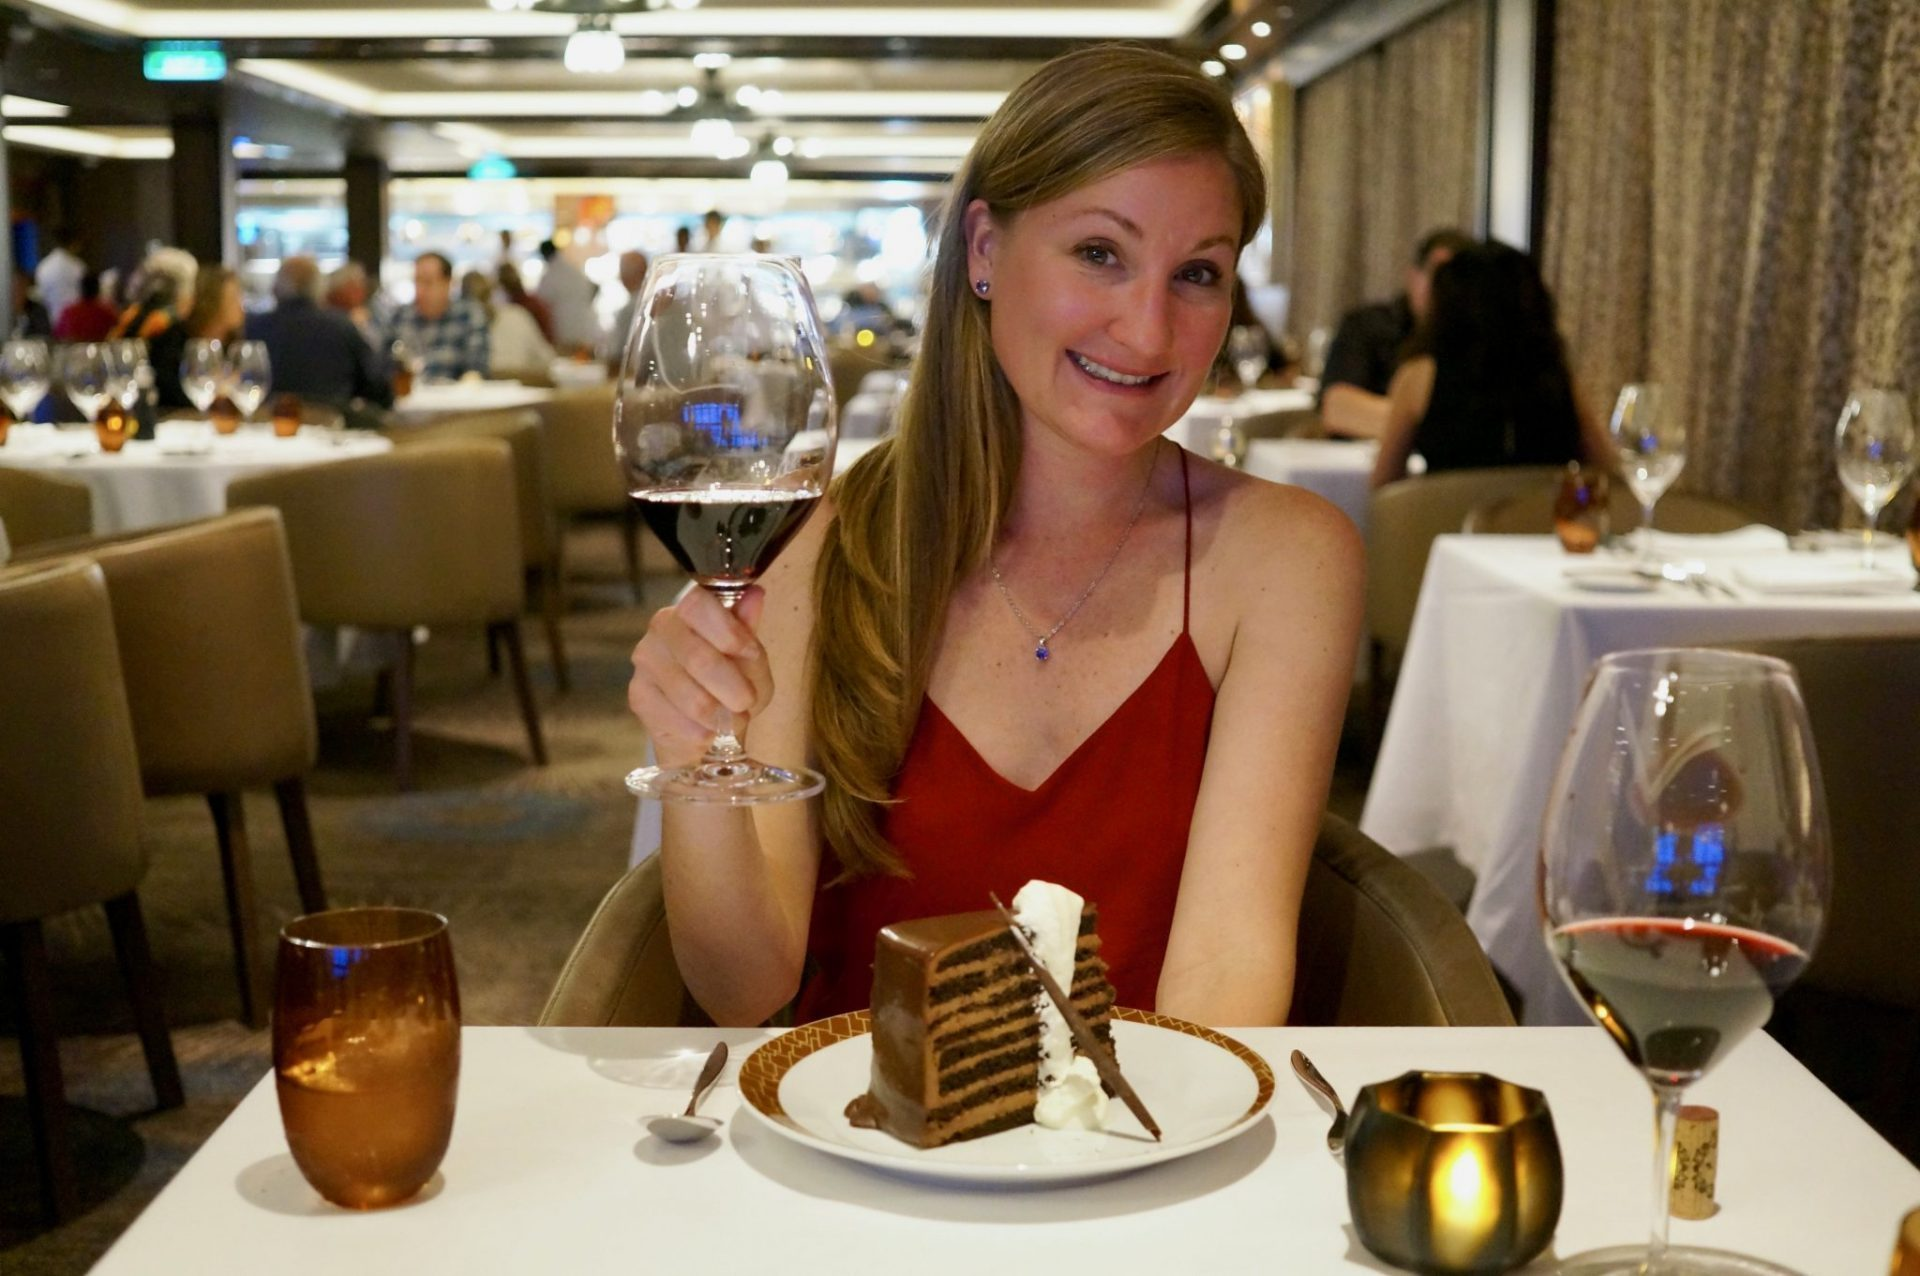 Wine and cake in the dining room on a cruise